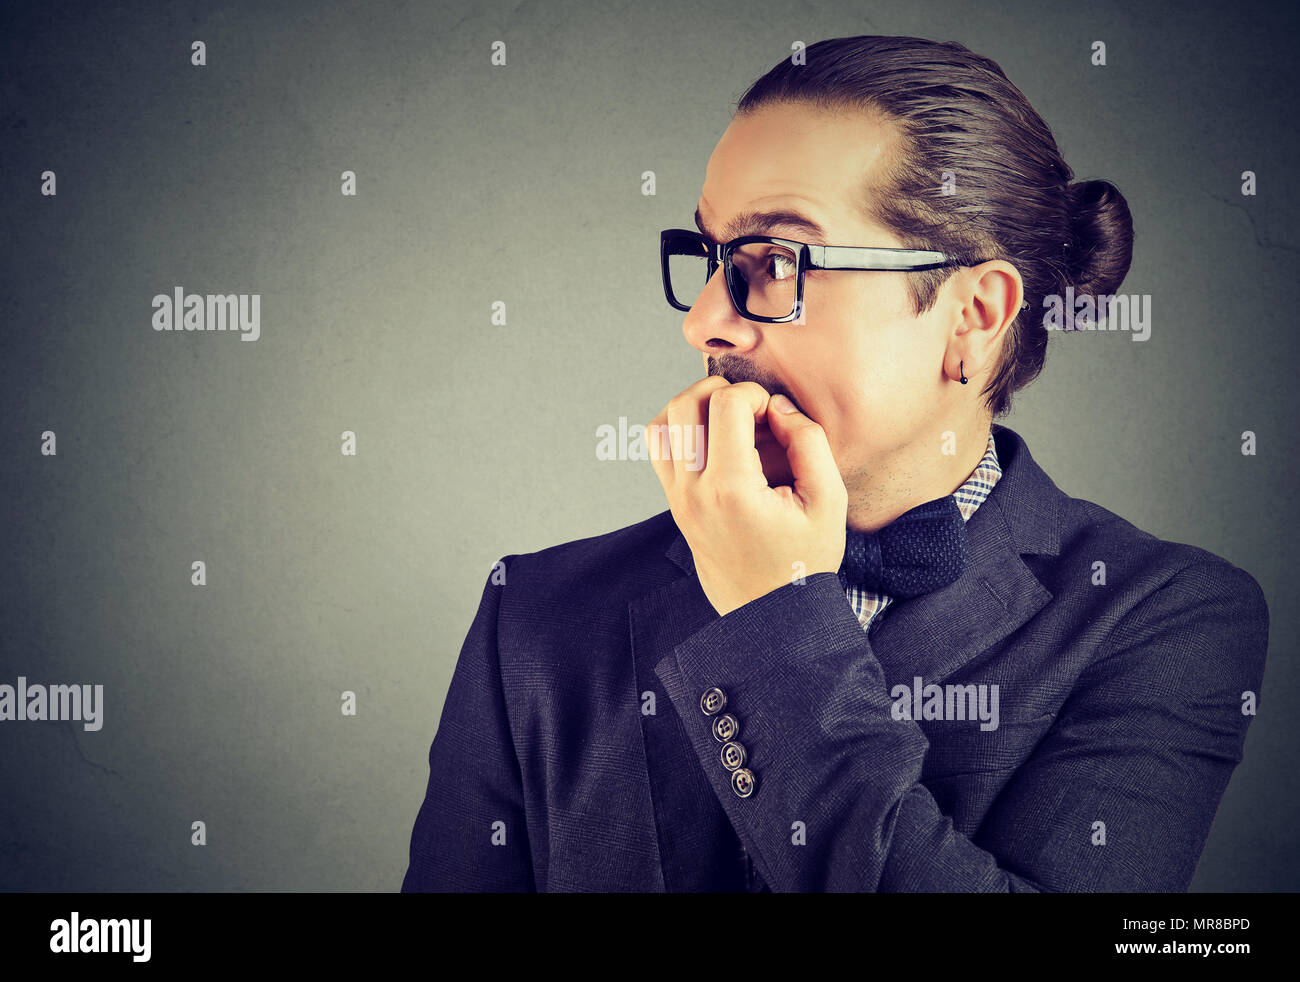 Preoccupied anxious young man biting his fingernails looking to the side - Stock Image